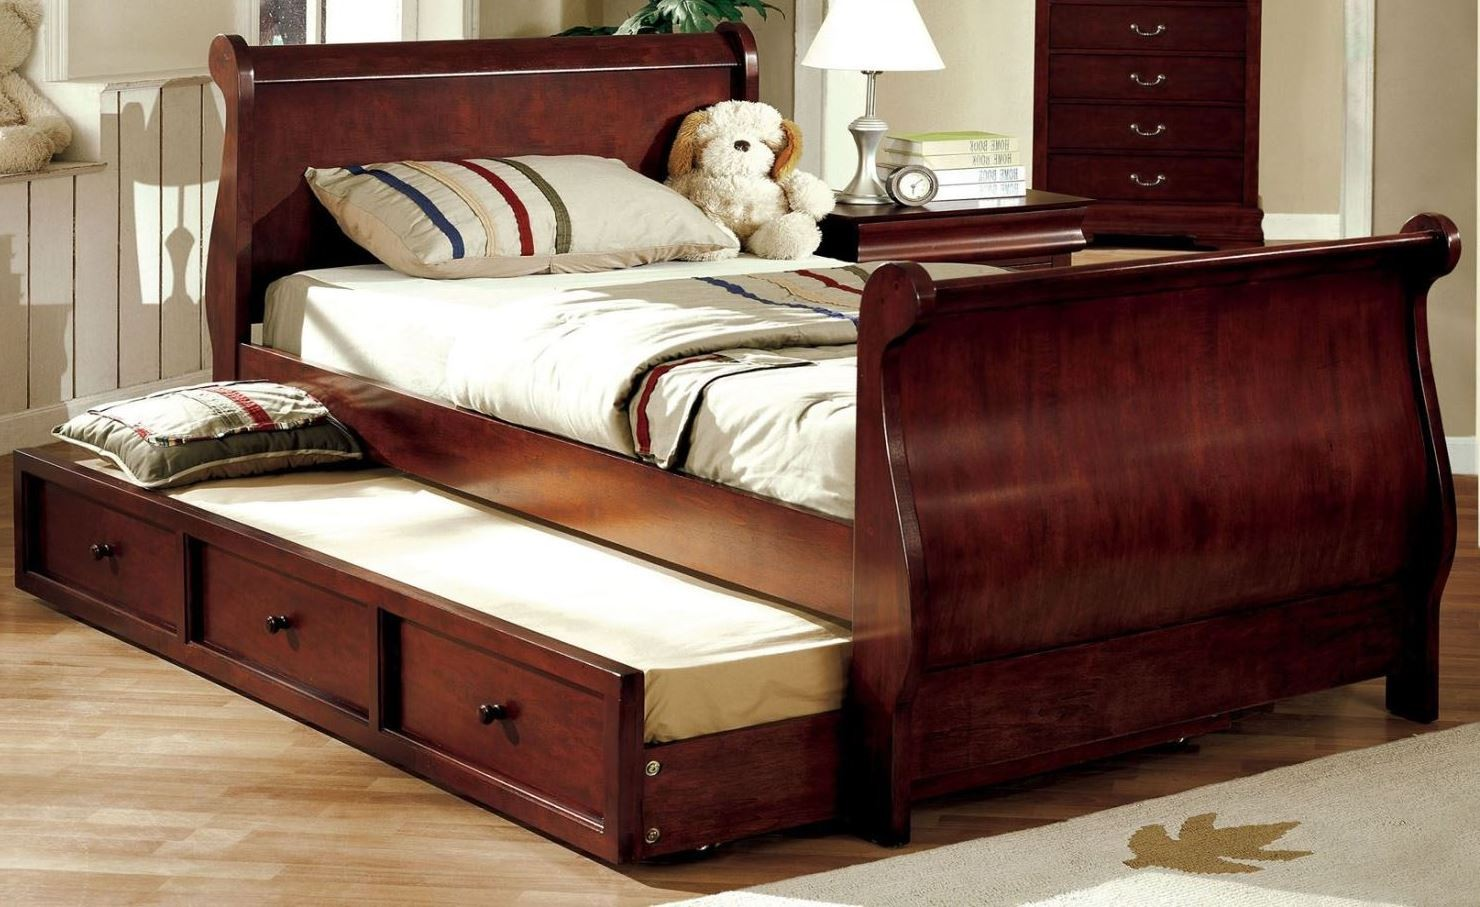 Louis philippe jr dark cherry twin trundle sleigh bed for Furniture of america